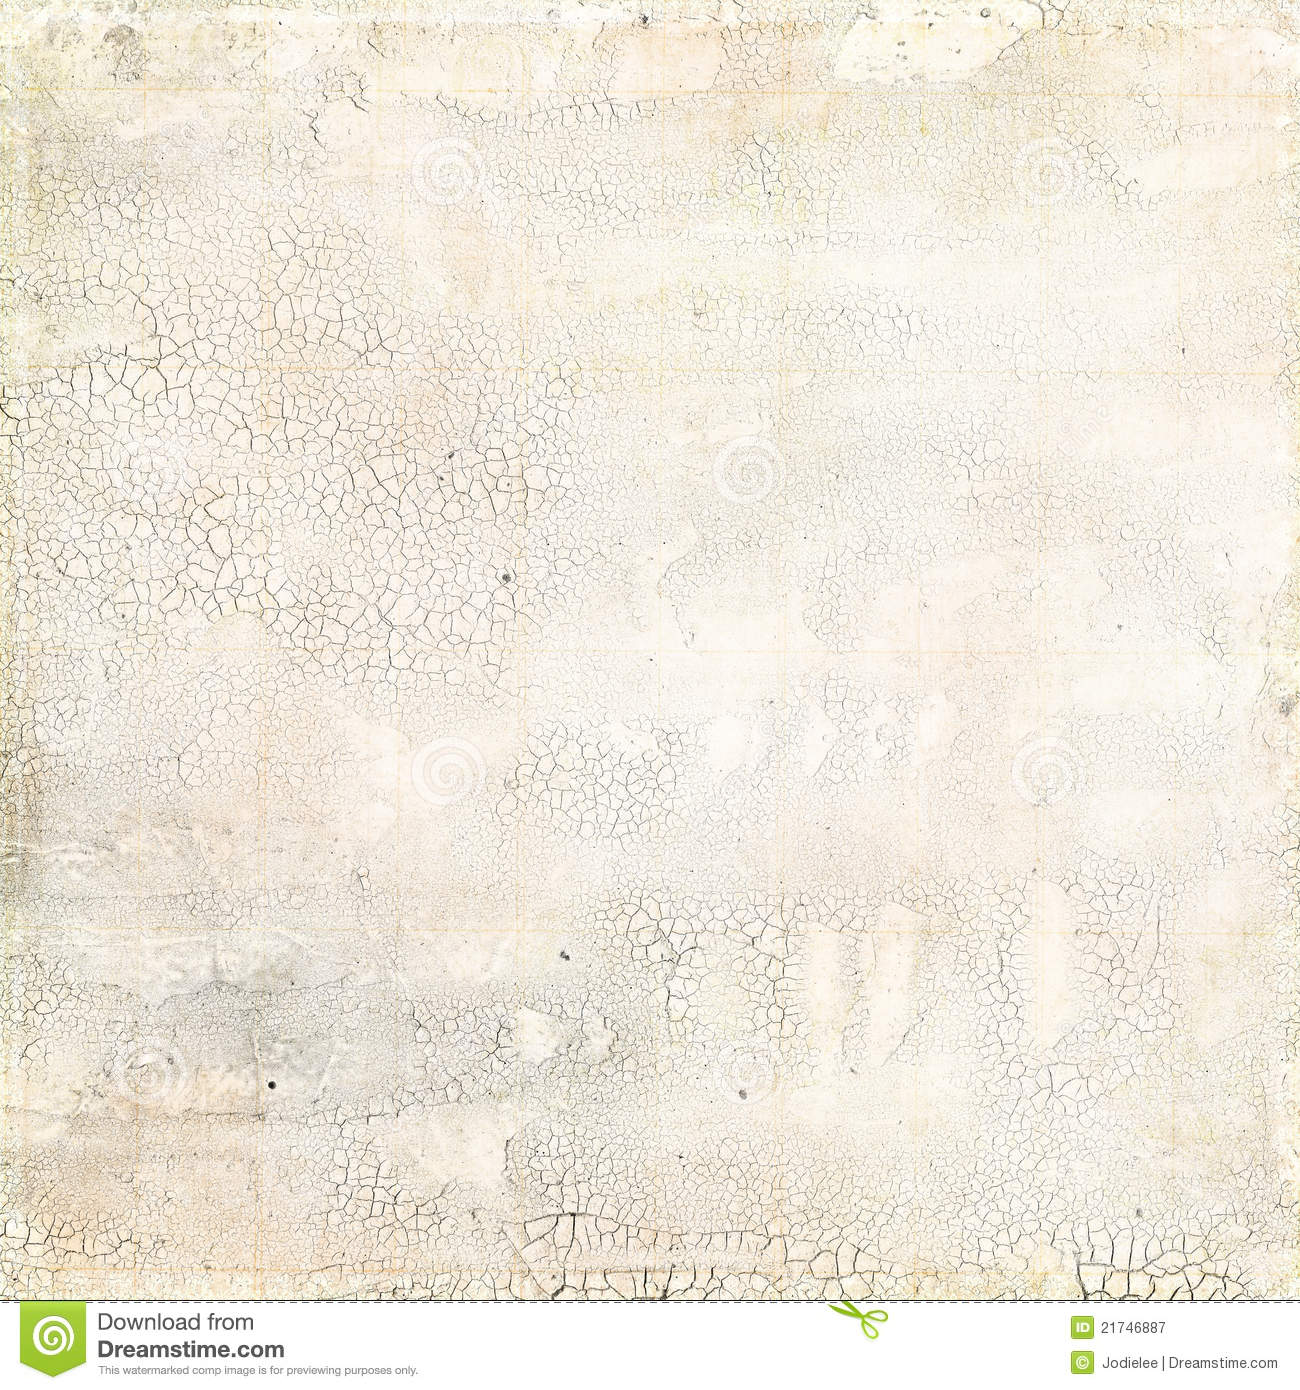 Grungy White Distressed Crackled Texture Royalty Free